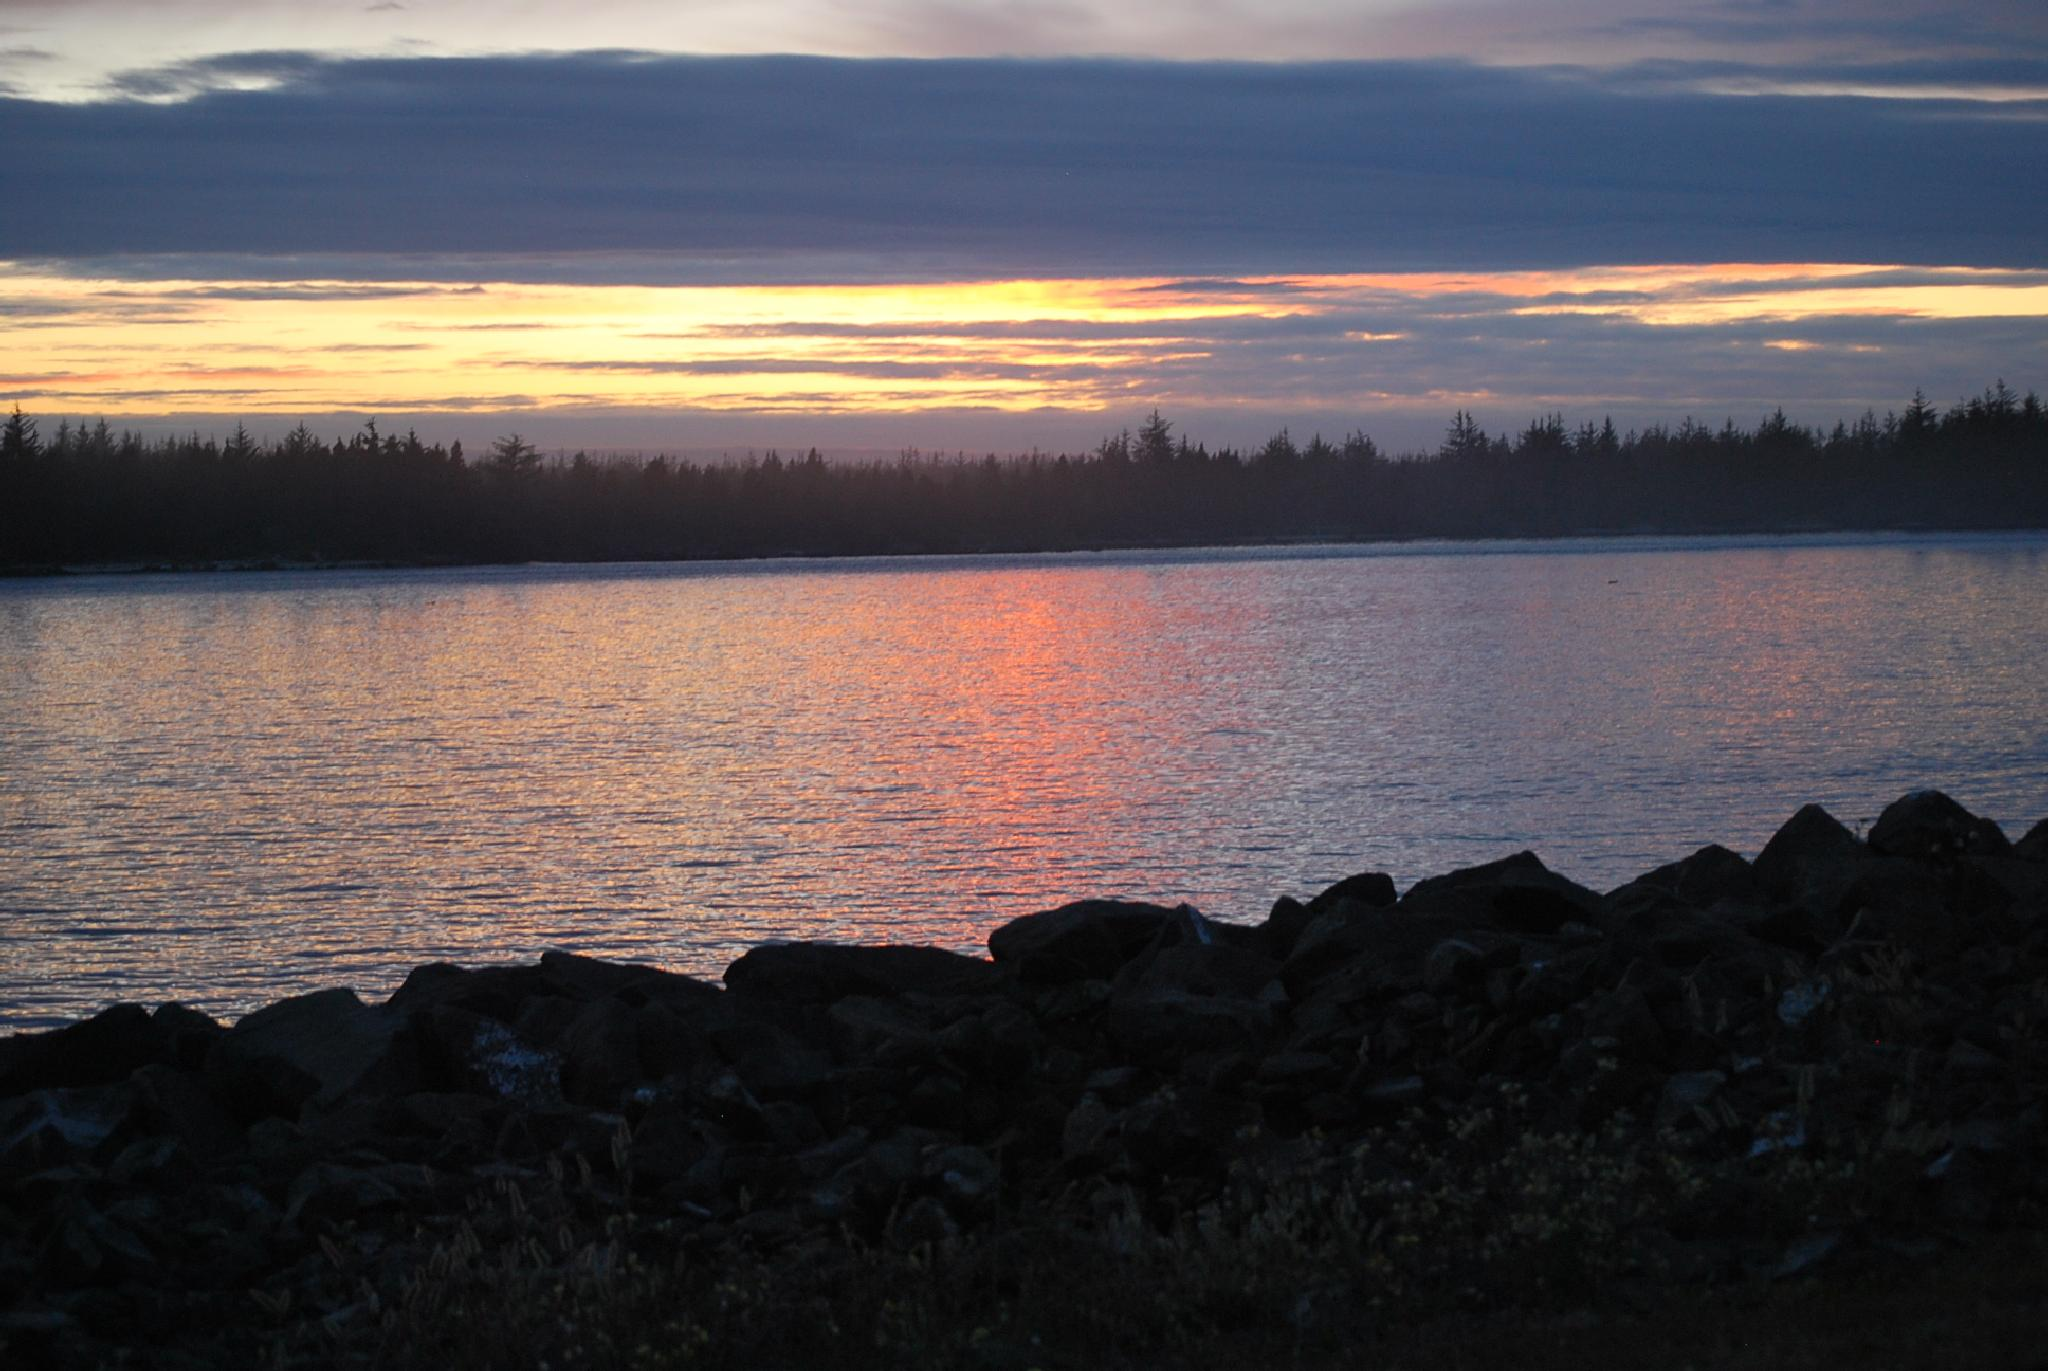 Sunset on Winchester Bay by marilyn wirtz